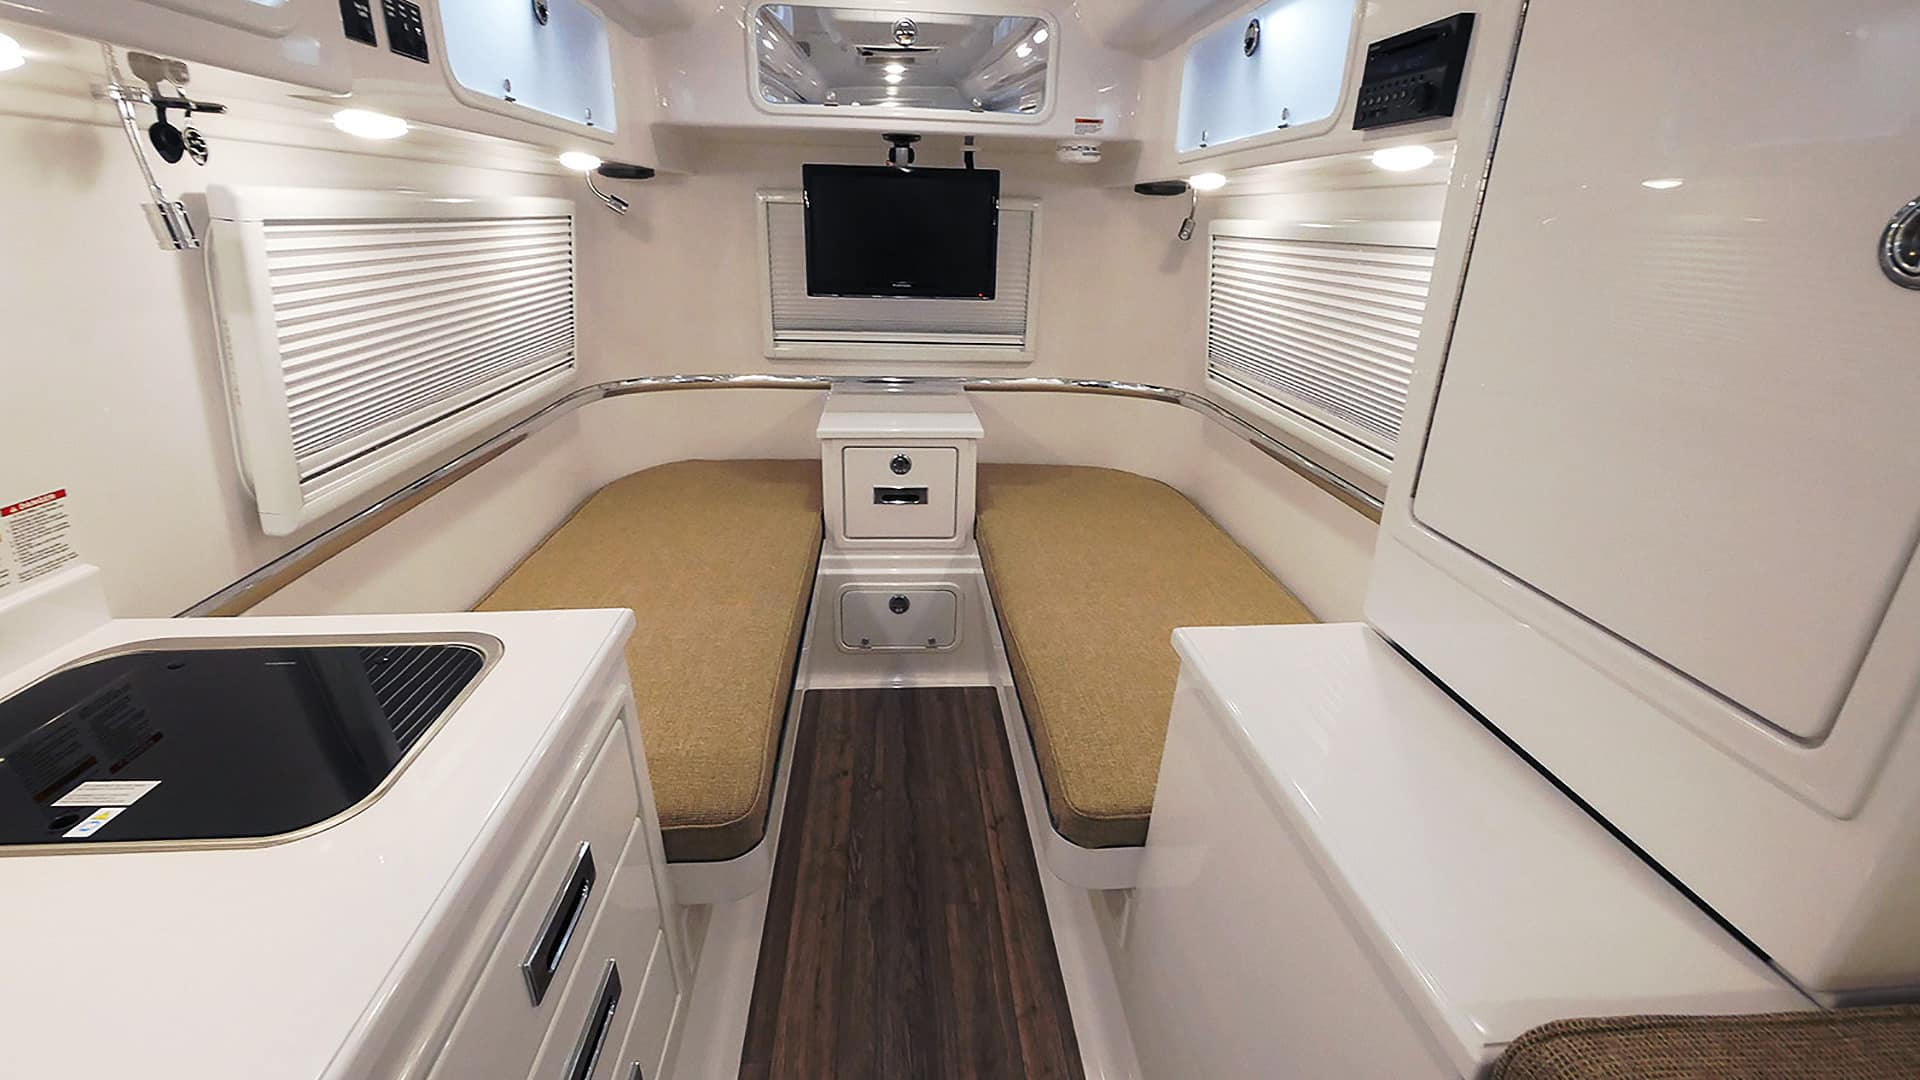 oliver travel trailers standard fiberglass bed counter tops